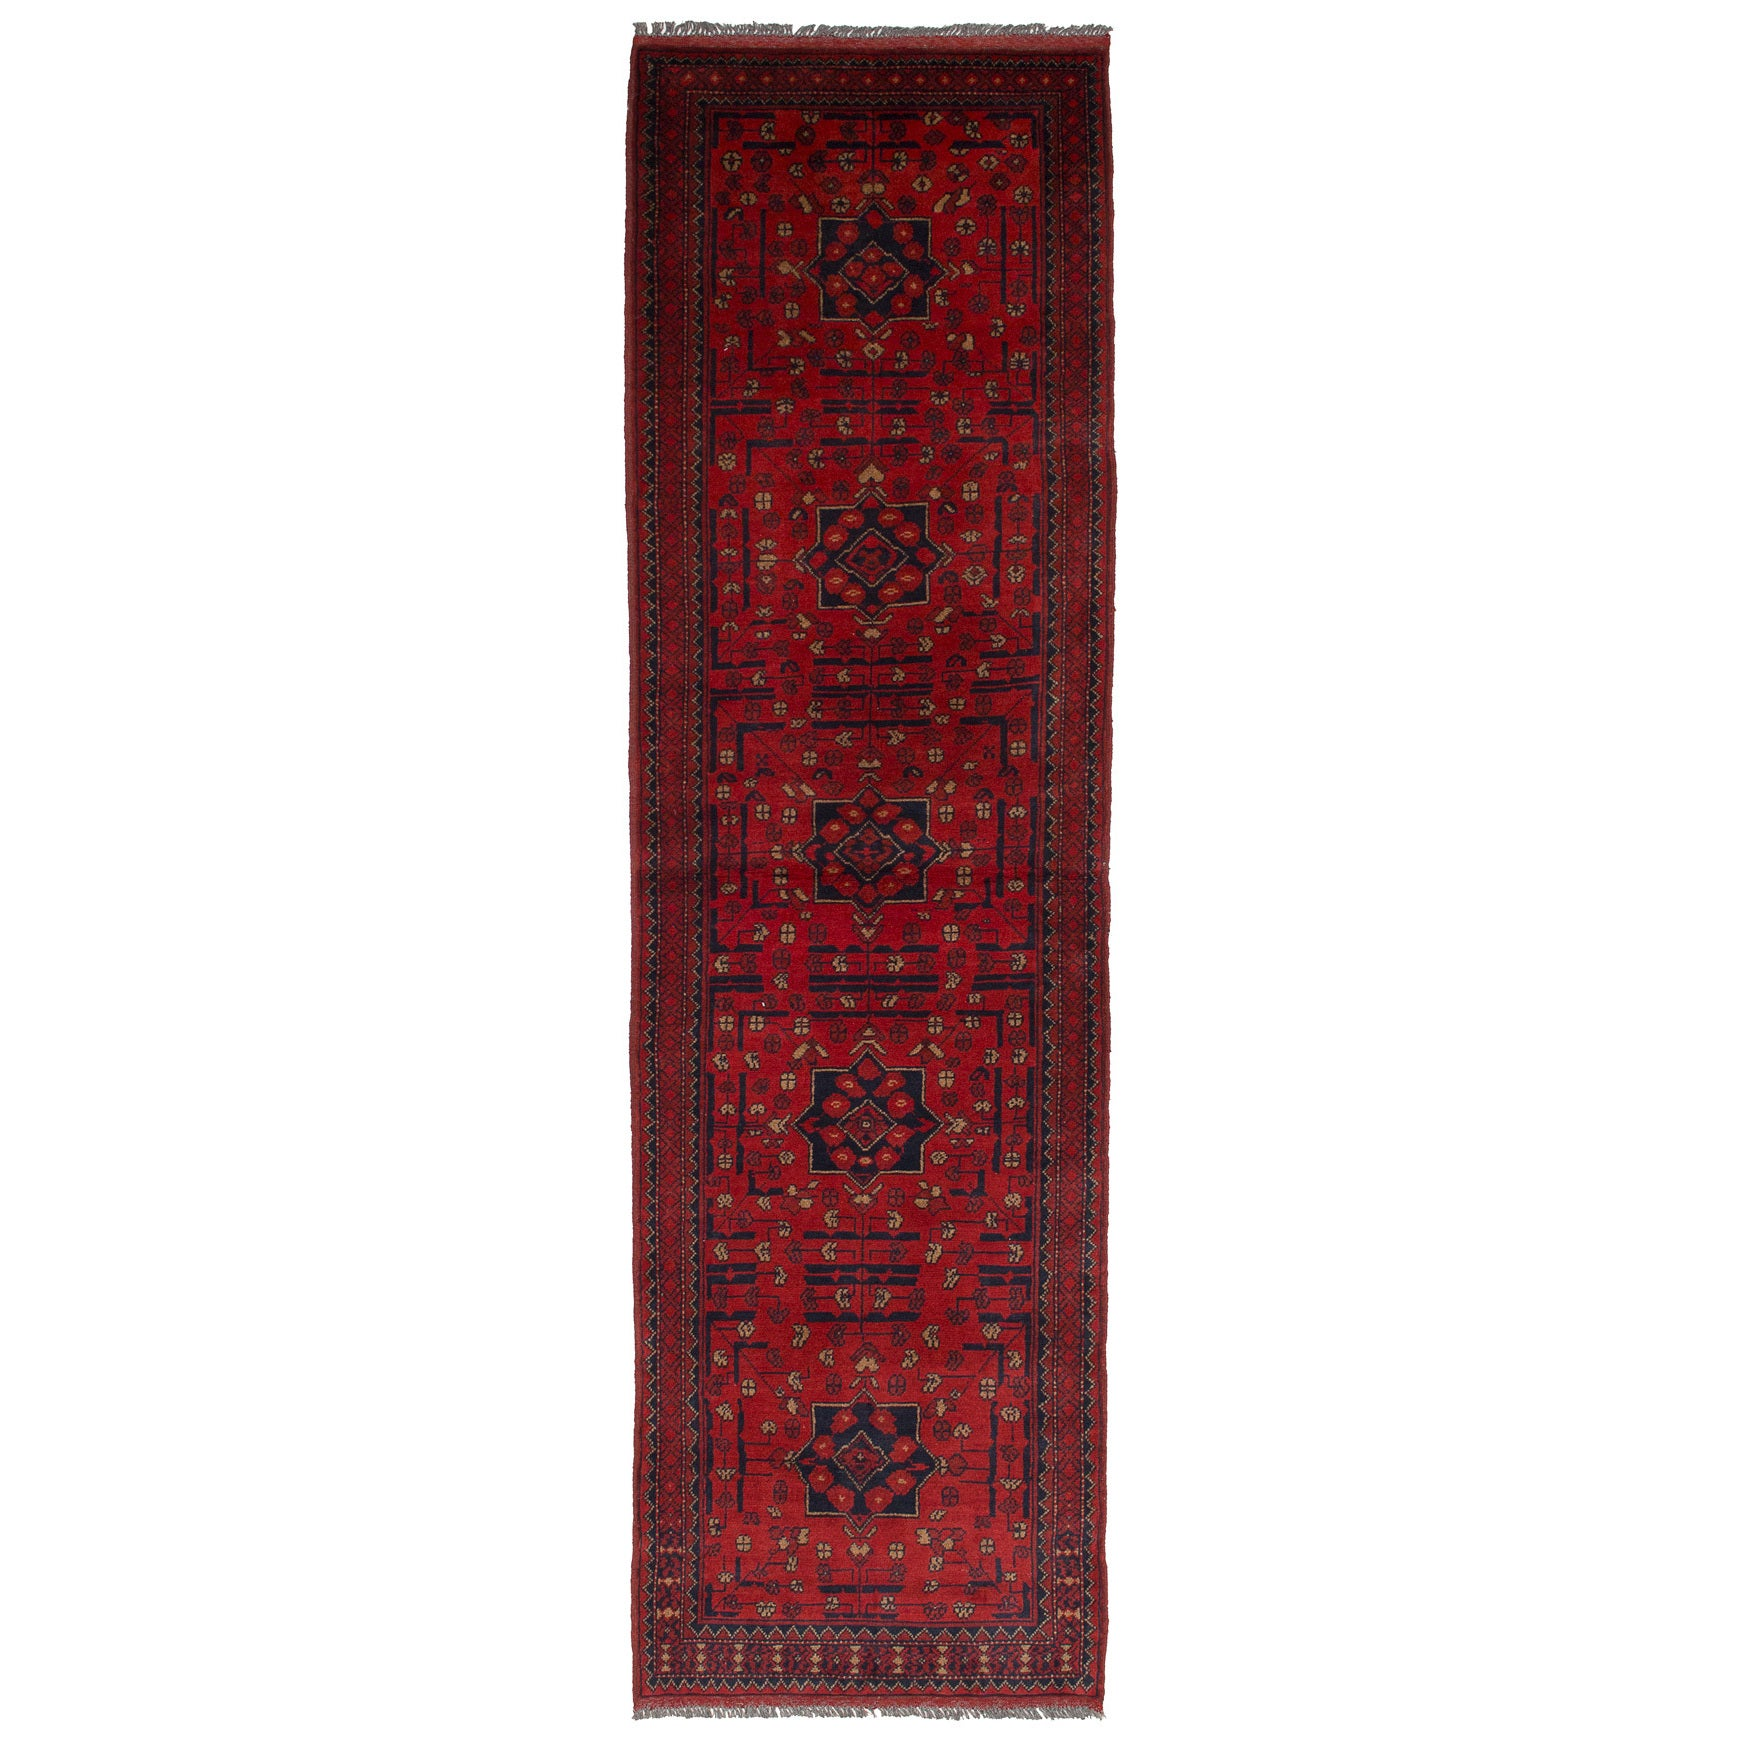 Ecarpetgallery Hand-Knotted Finest Khal Mohammadi Red Woo...